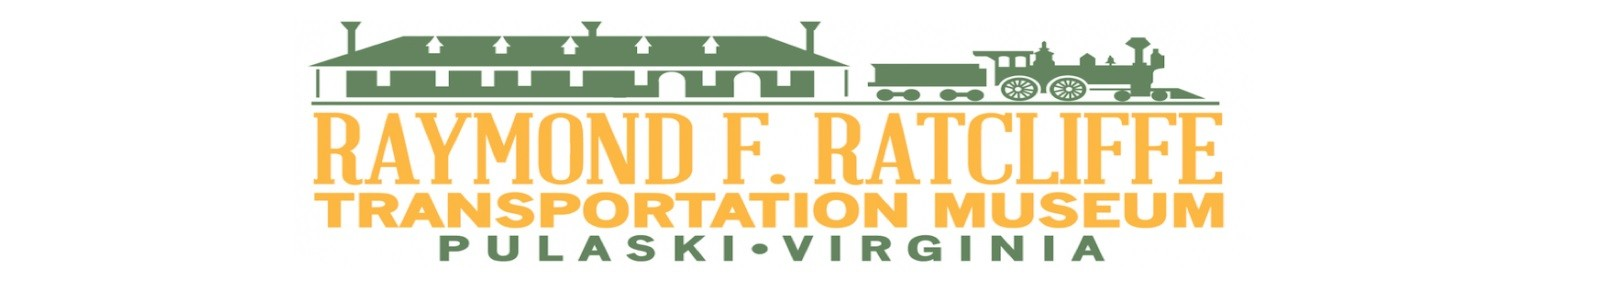 The Raymond F. Ratcliffe Memorial Transportation Museum